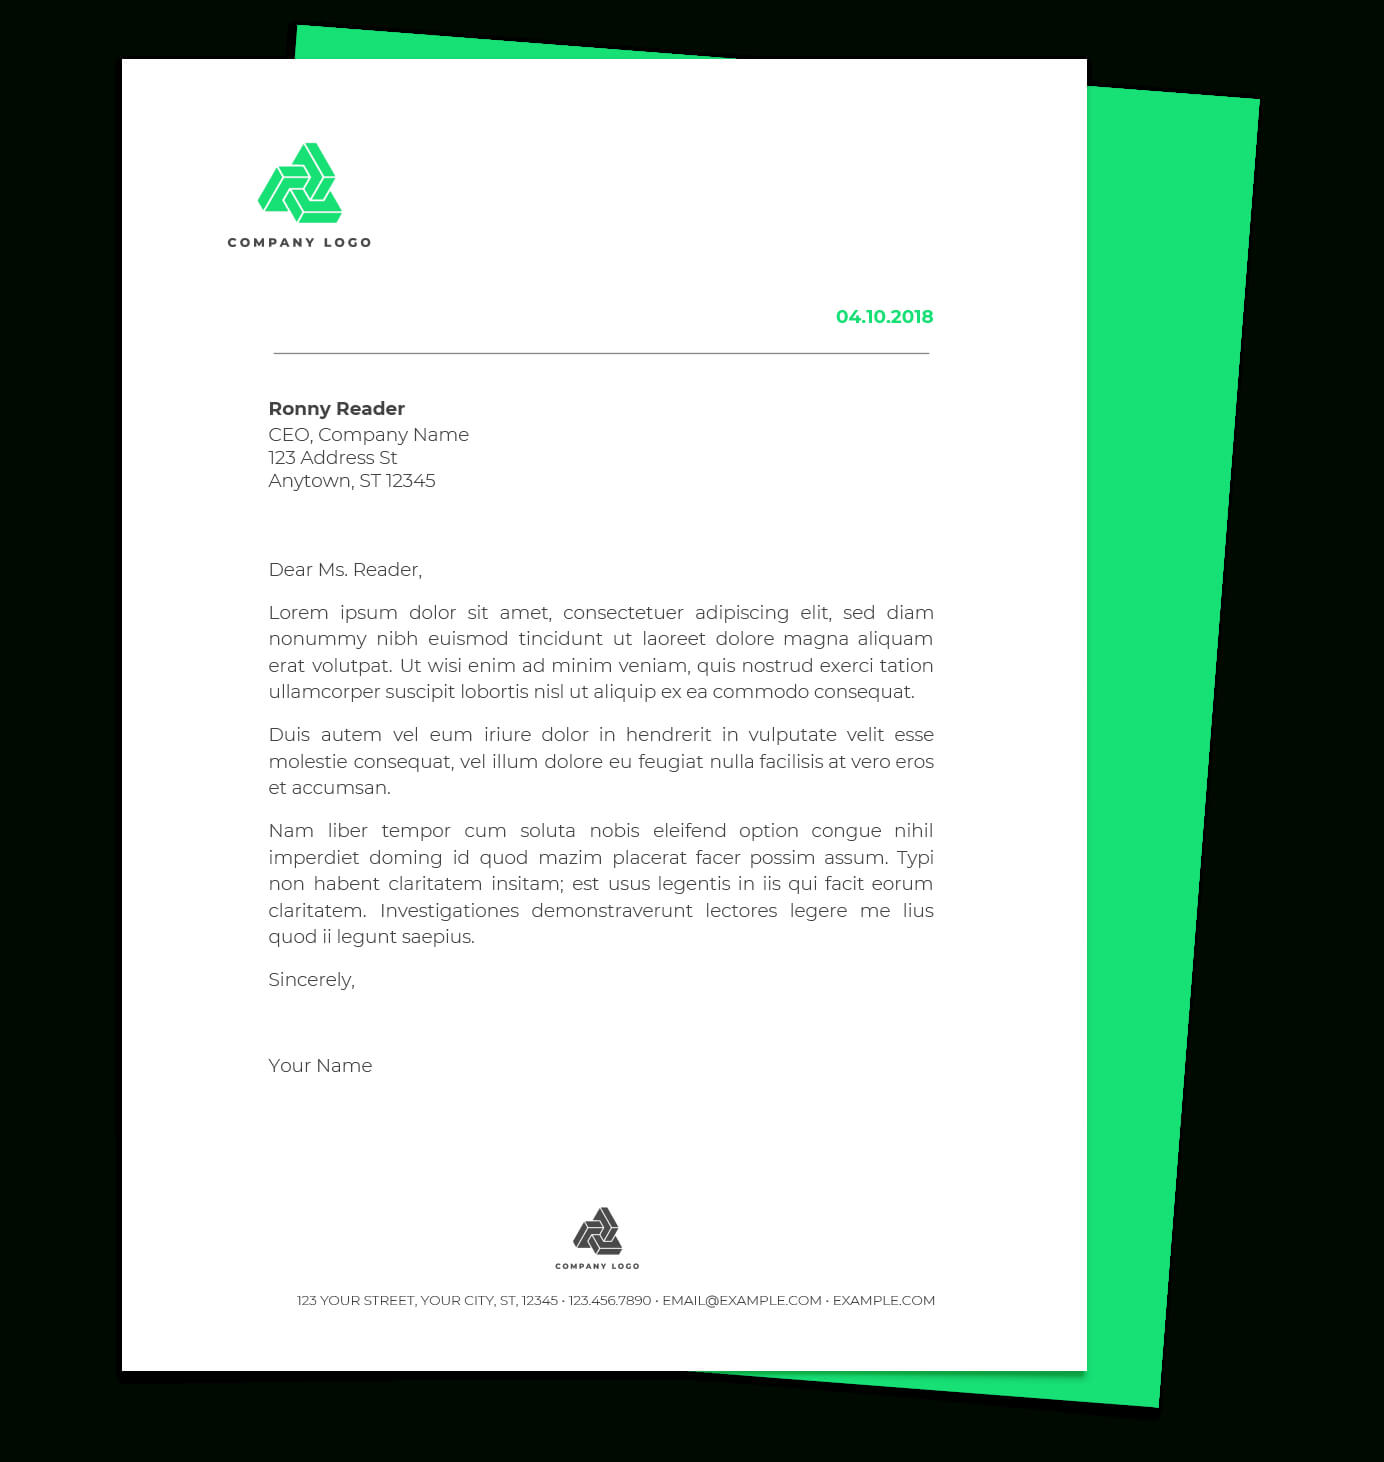 Free Letterhead Templates For Google Docs And Word in Free Letterhead Templates For Microsoft Word